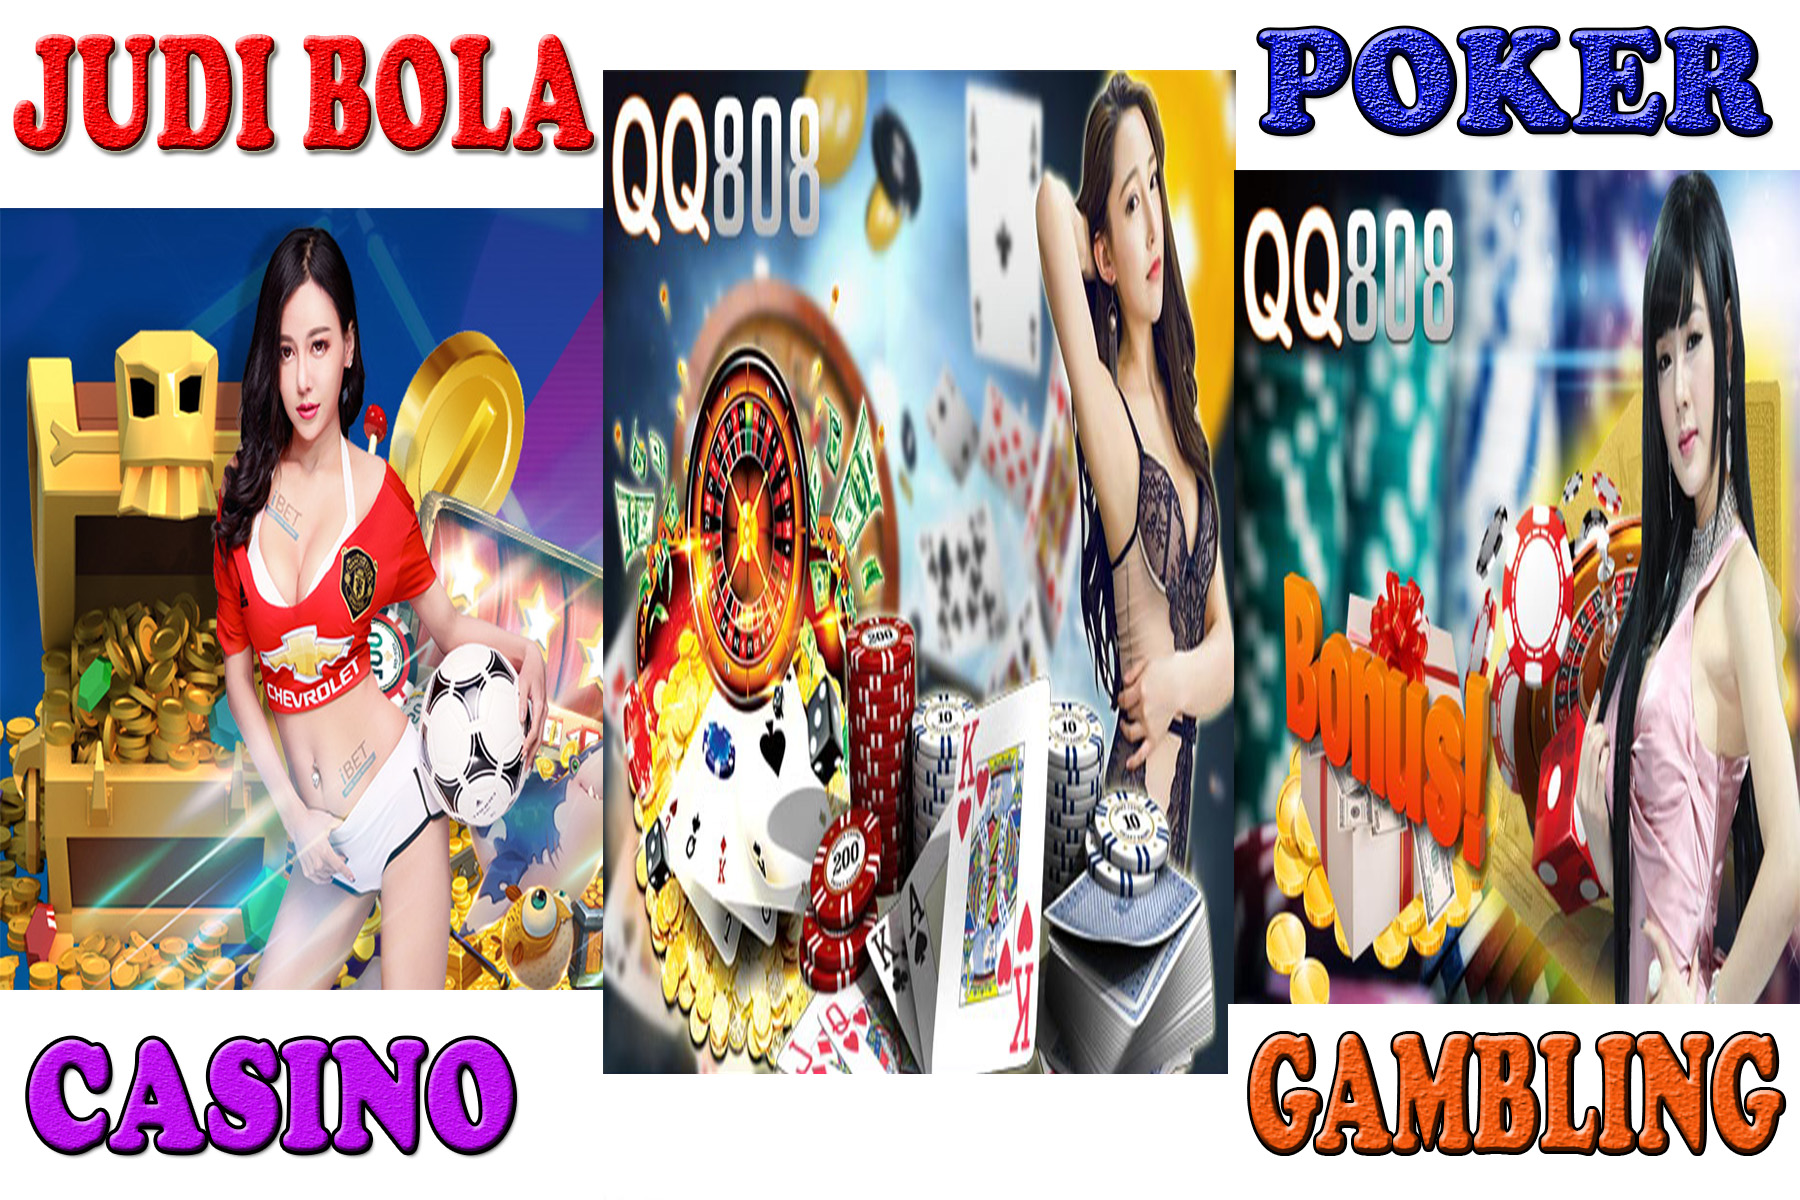 Powerful 300 Judi Bola,  Casino Online,  Poker Online,  Gambling PBNs Post Your Site